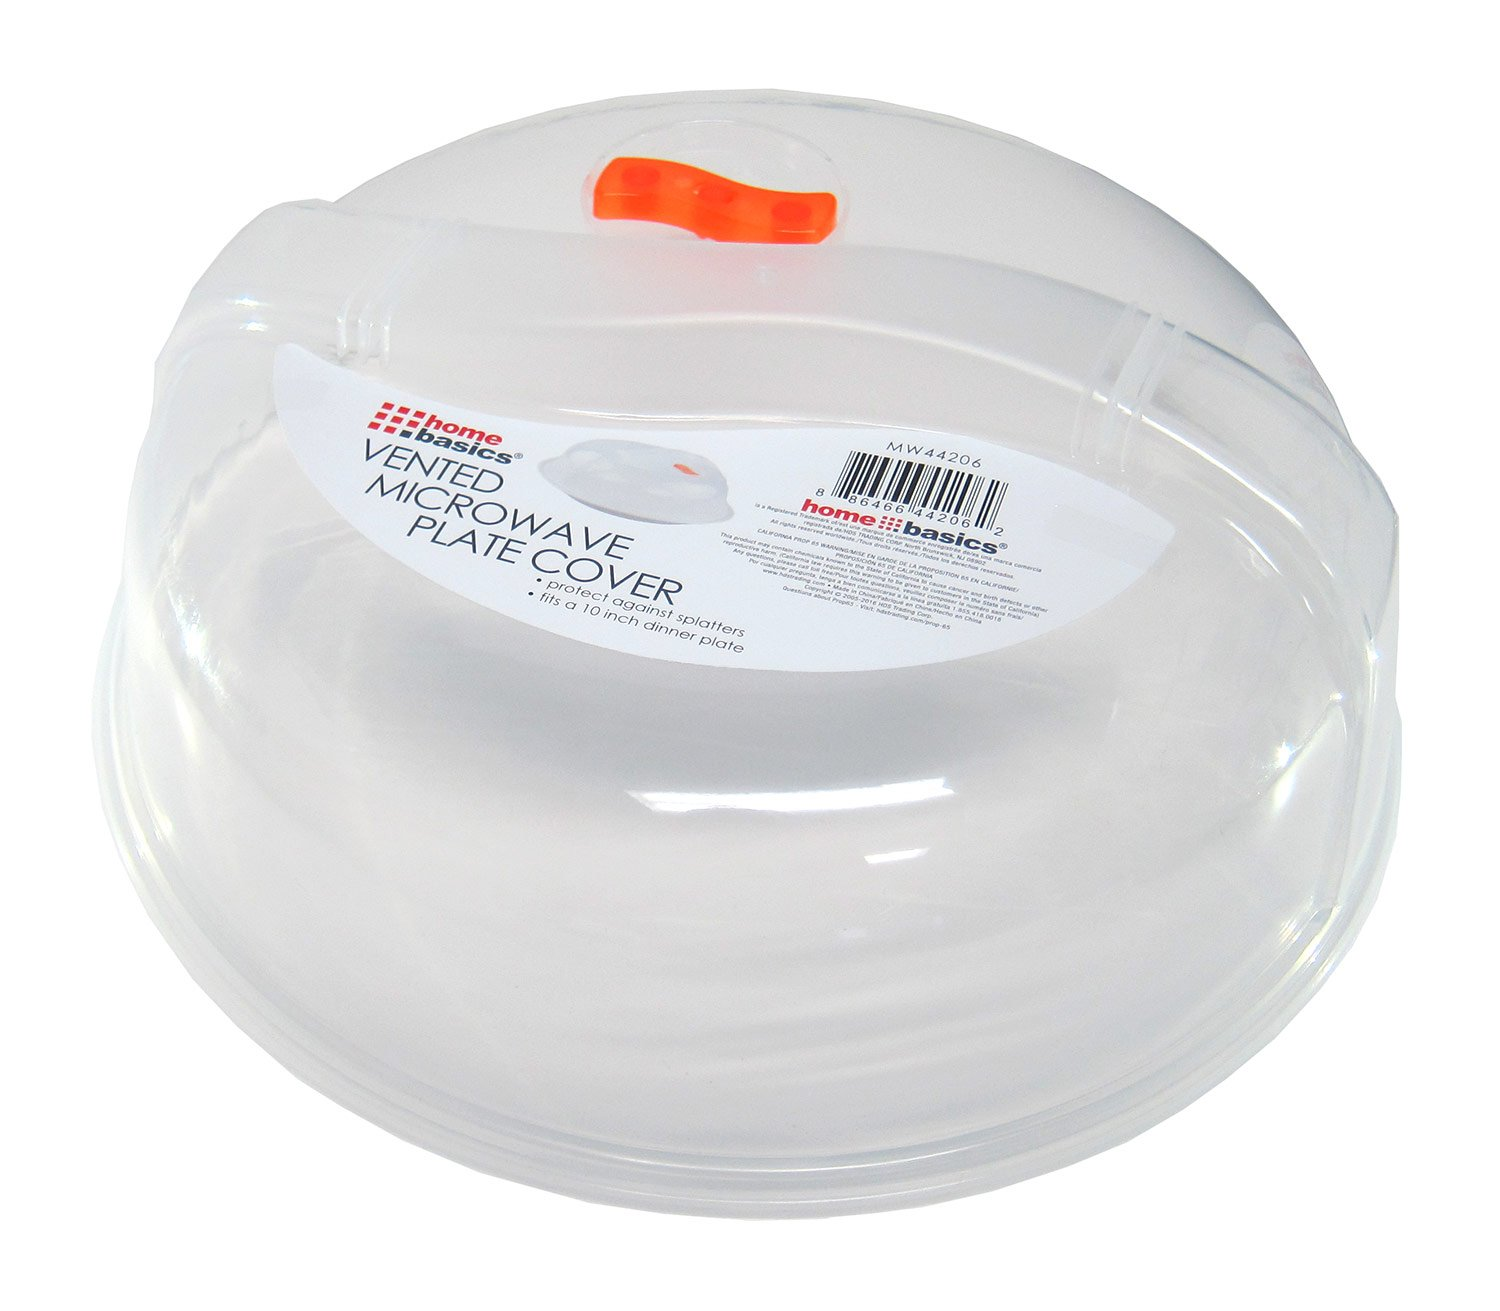 Fits 10 Inch Plate Home Basics Microwave Plate Cover With Air Vent